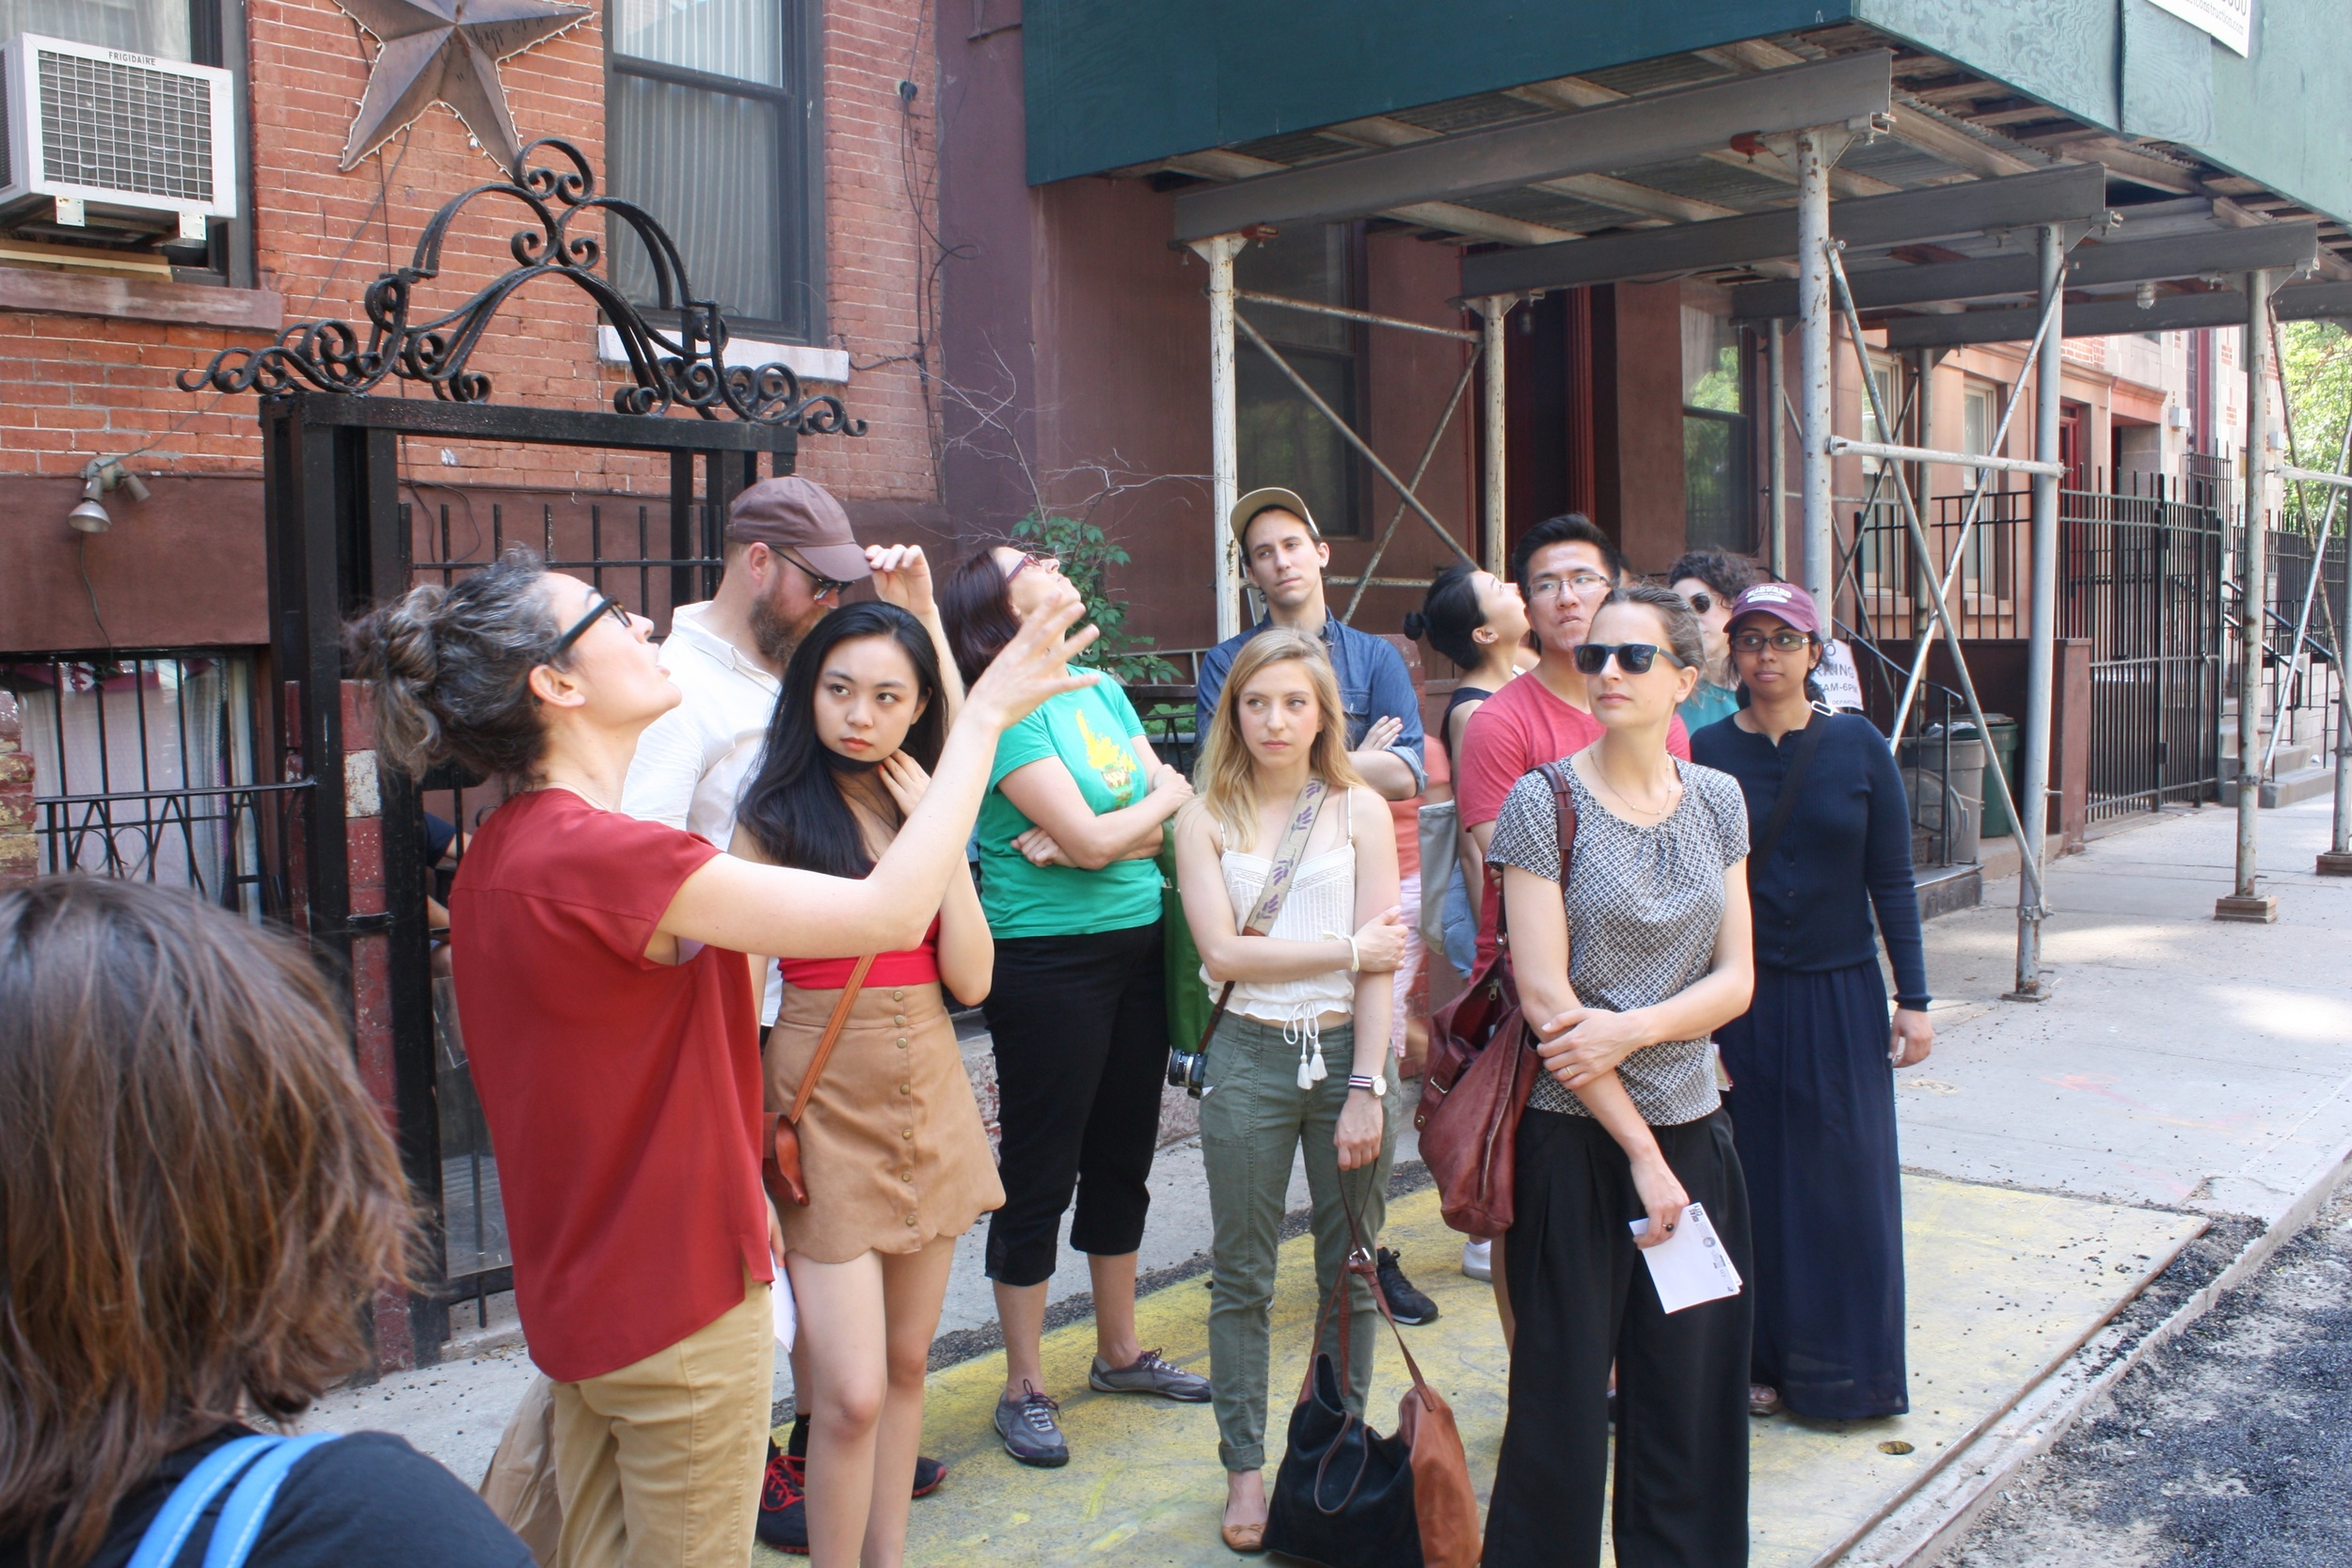 In front of the old PS 64 during the walk in the East Village.